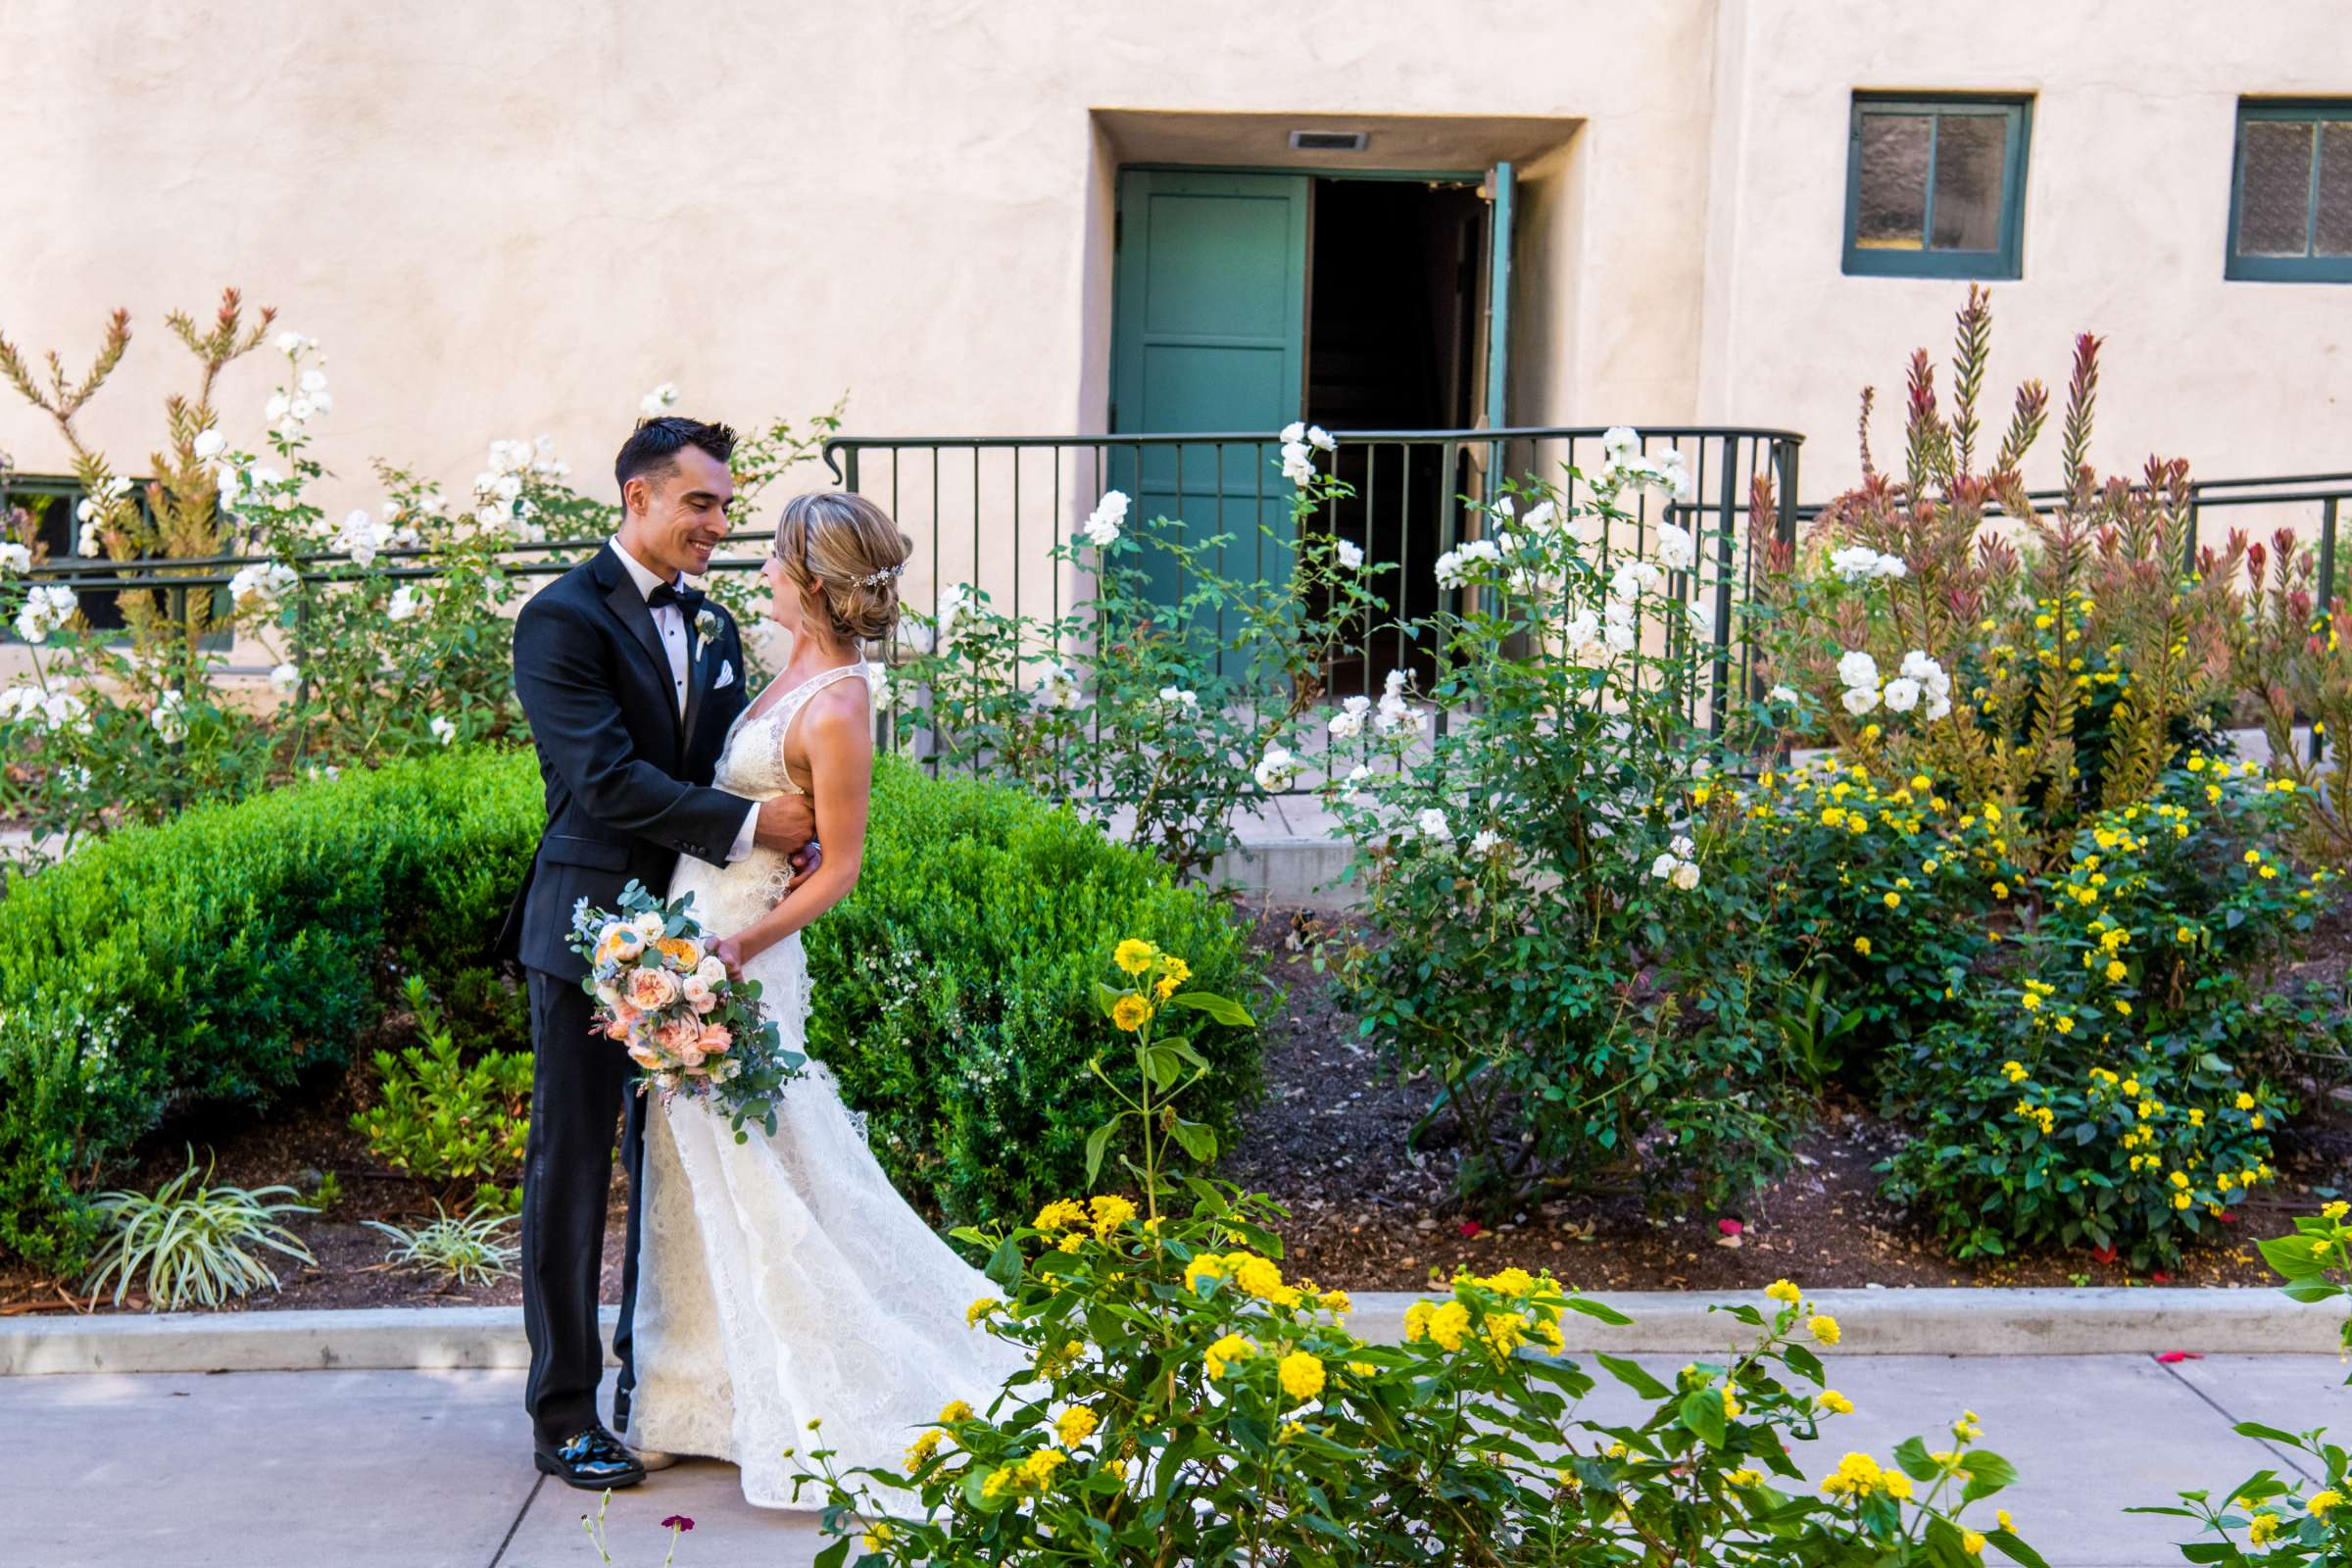 The Prado Wedding coordinated by Bliss Events, Sara and Marvin Wedding Photo #559575 by True Photography